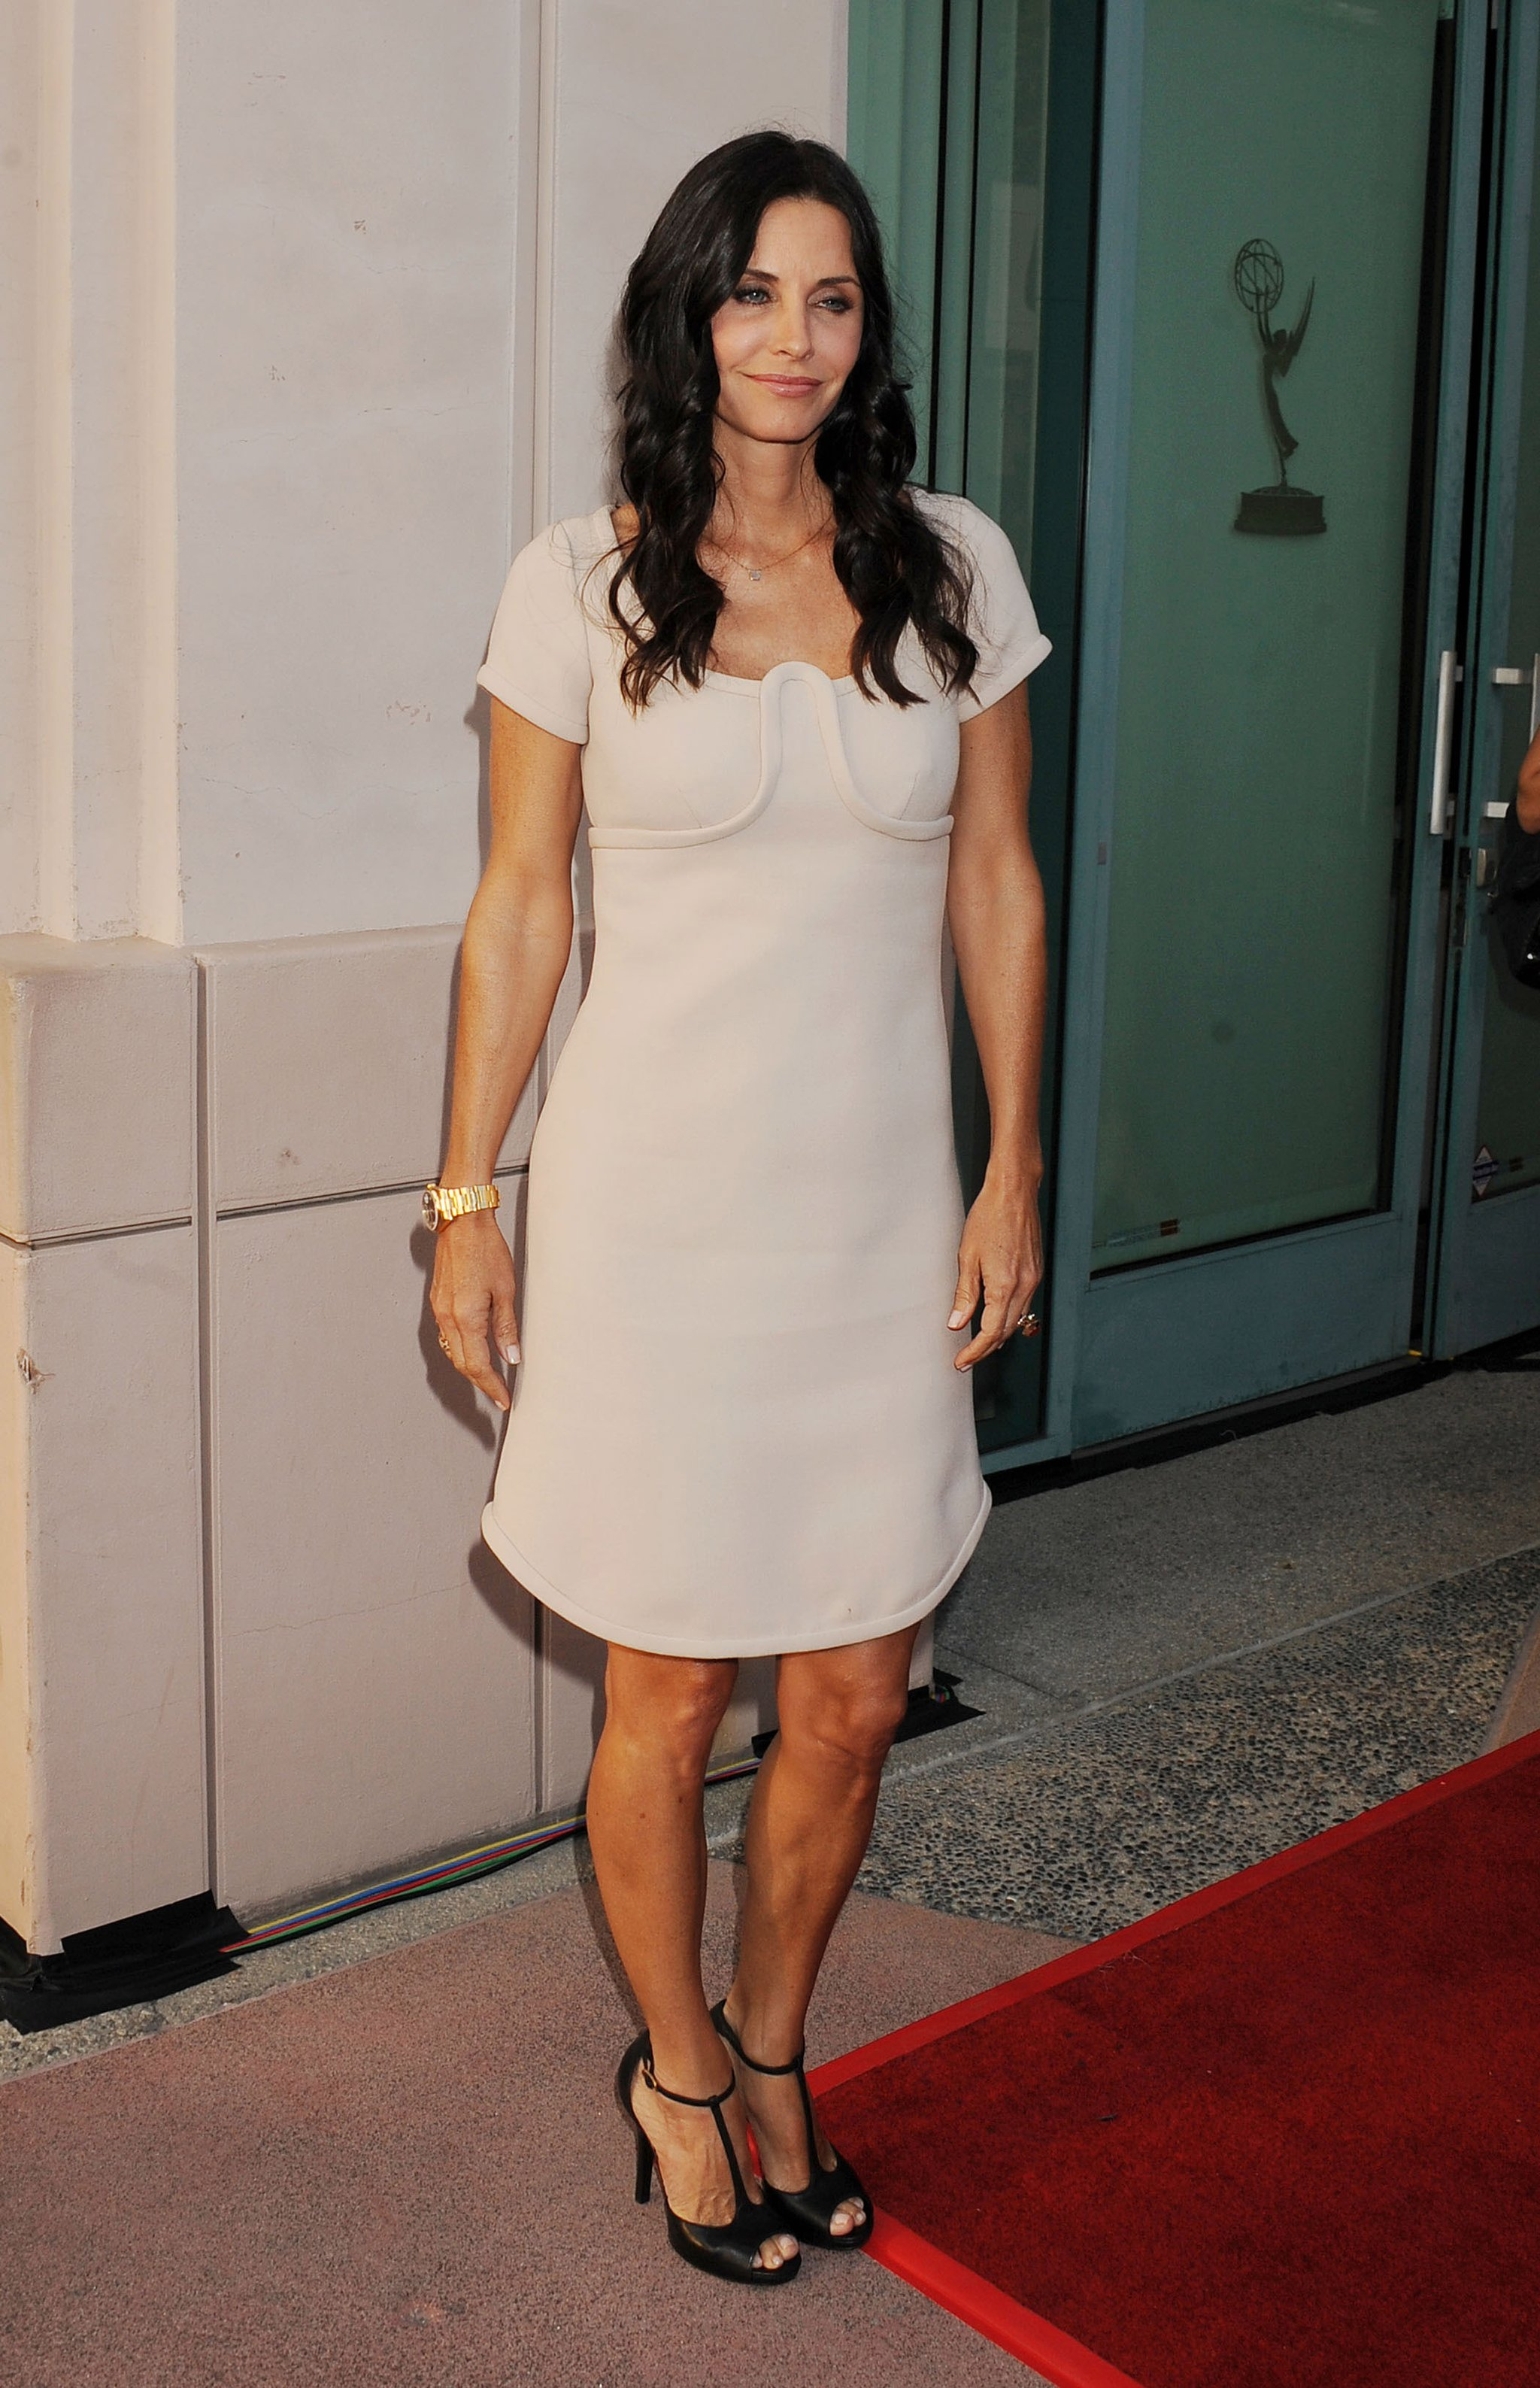 Courteney Cox For mobile